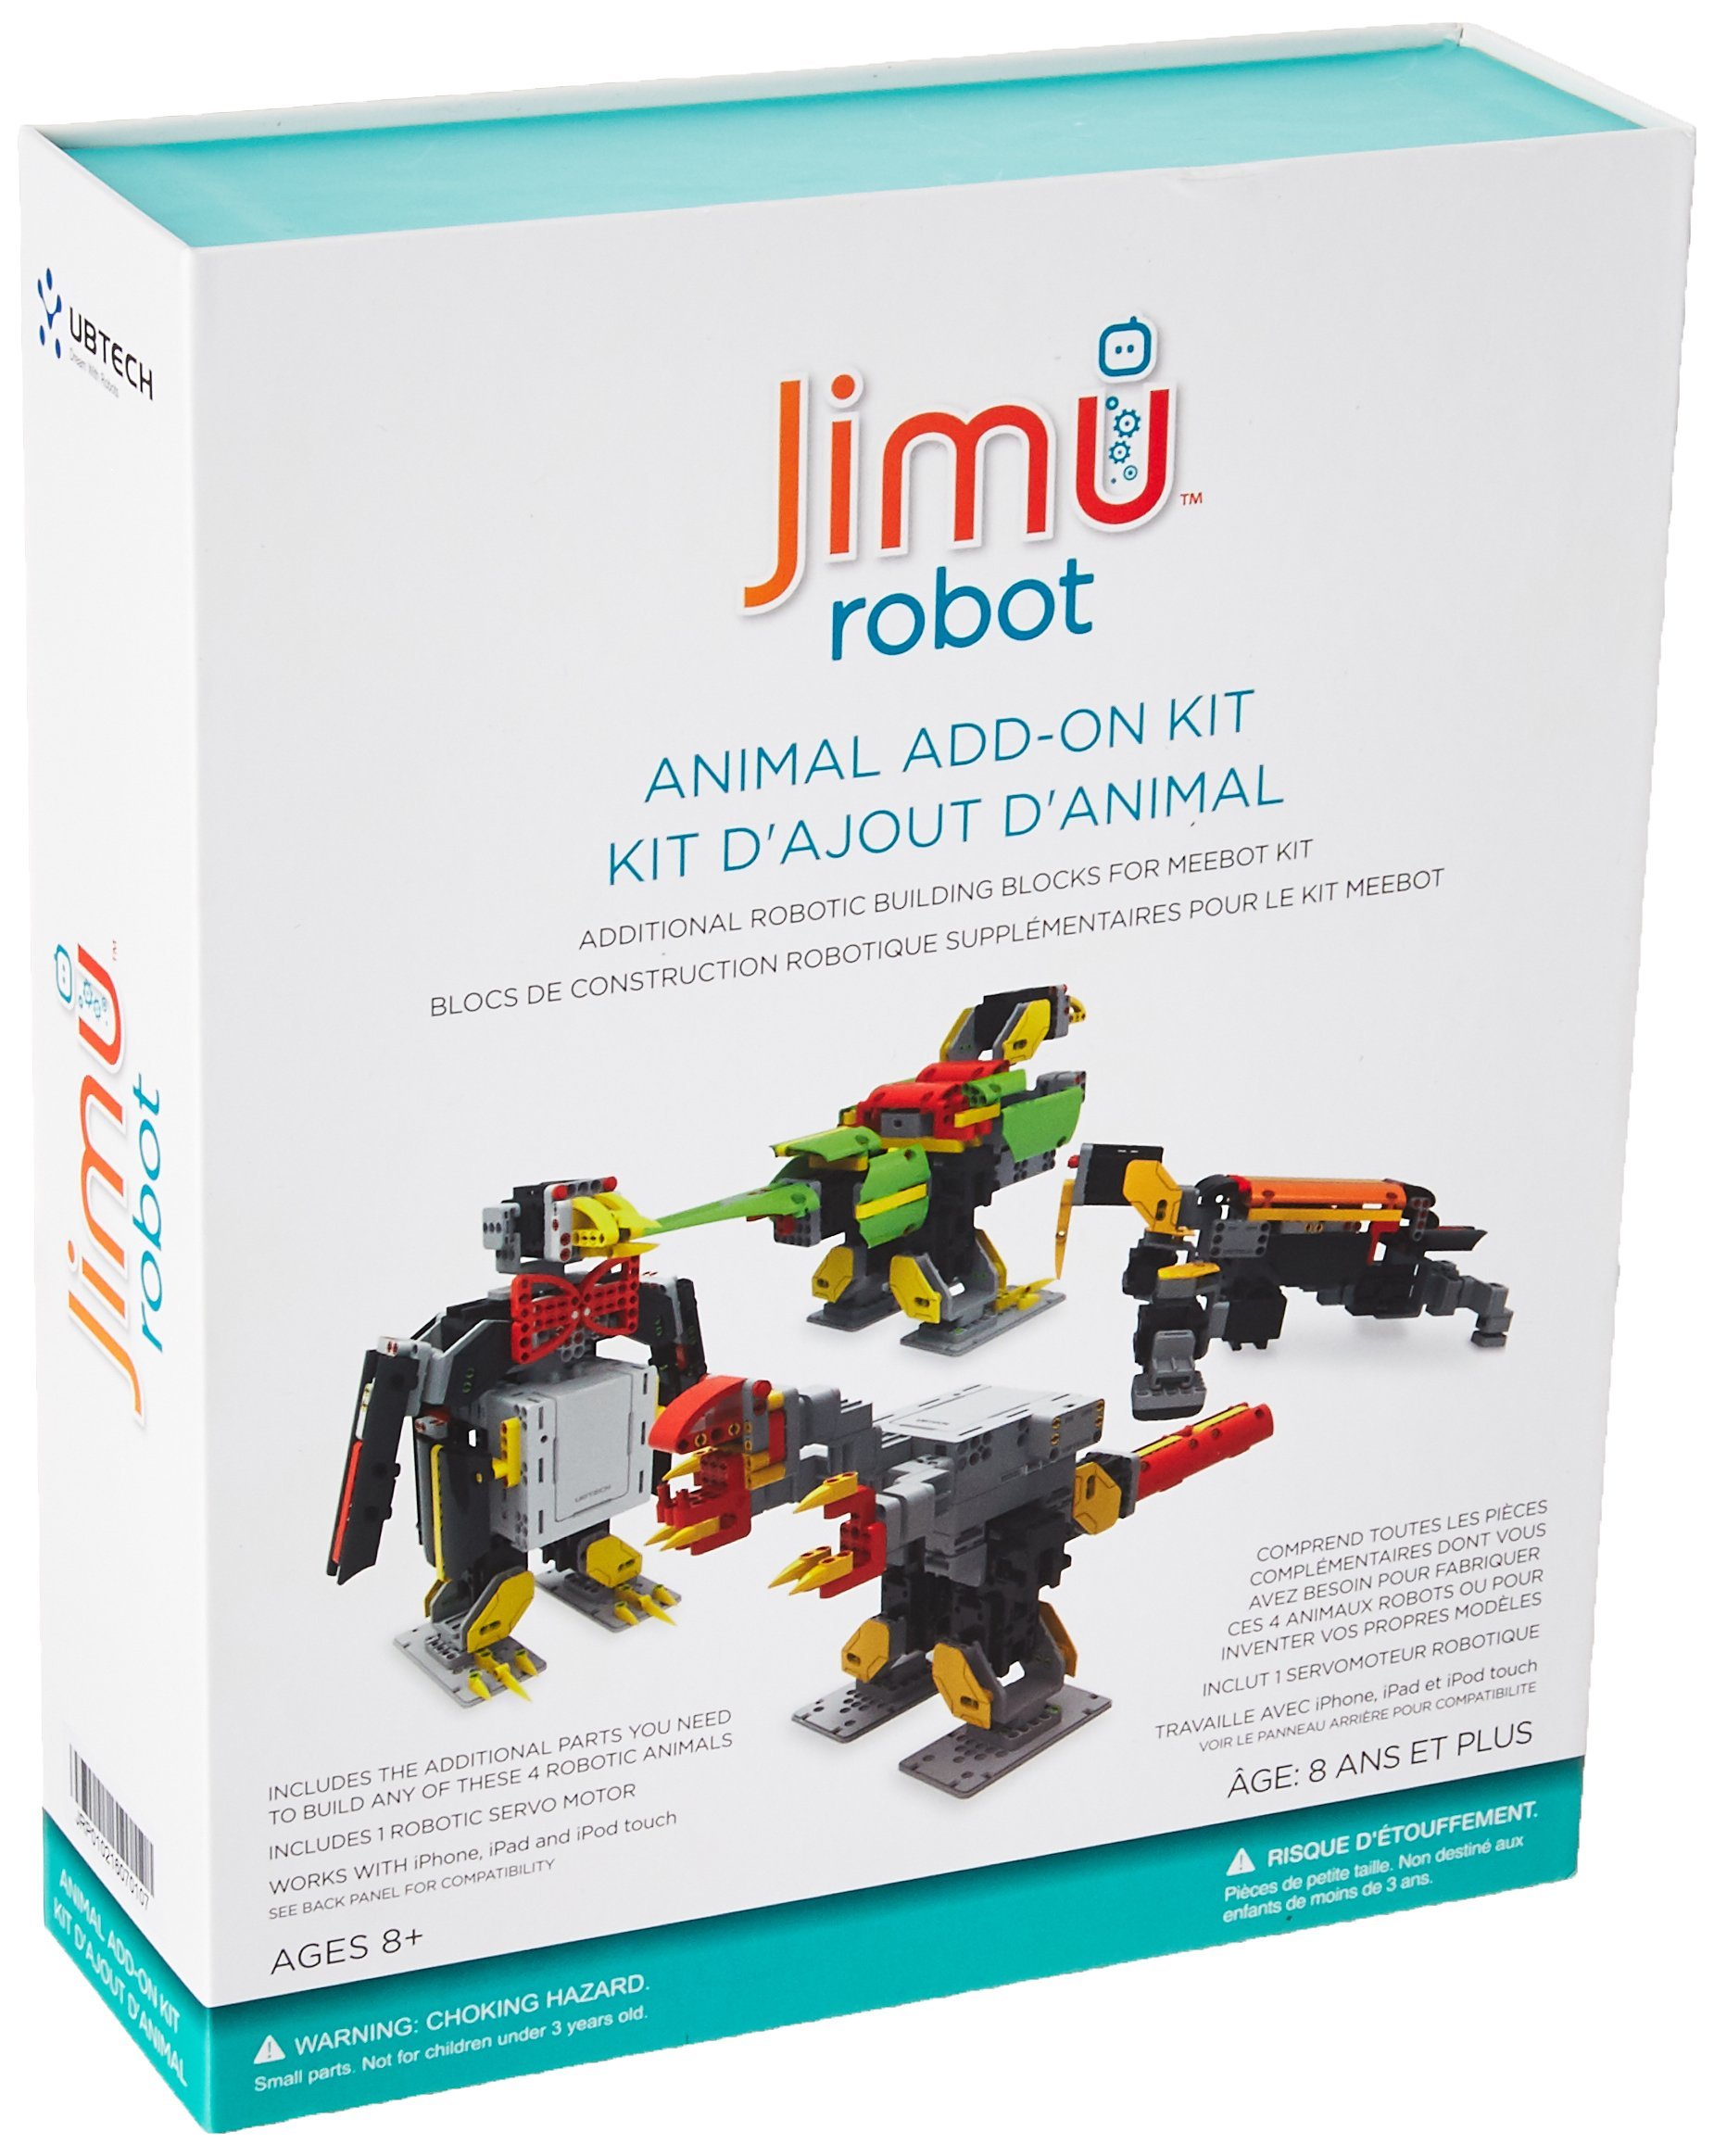 UBTECH JIMU Robot Animal Add On Kit - Digital Servo & Character Parts for All JIMU Robot Kits Building Kit by UBTECH (Image #1)